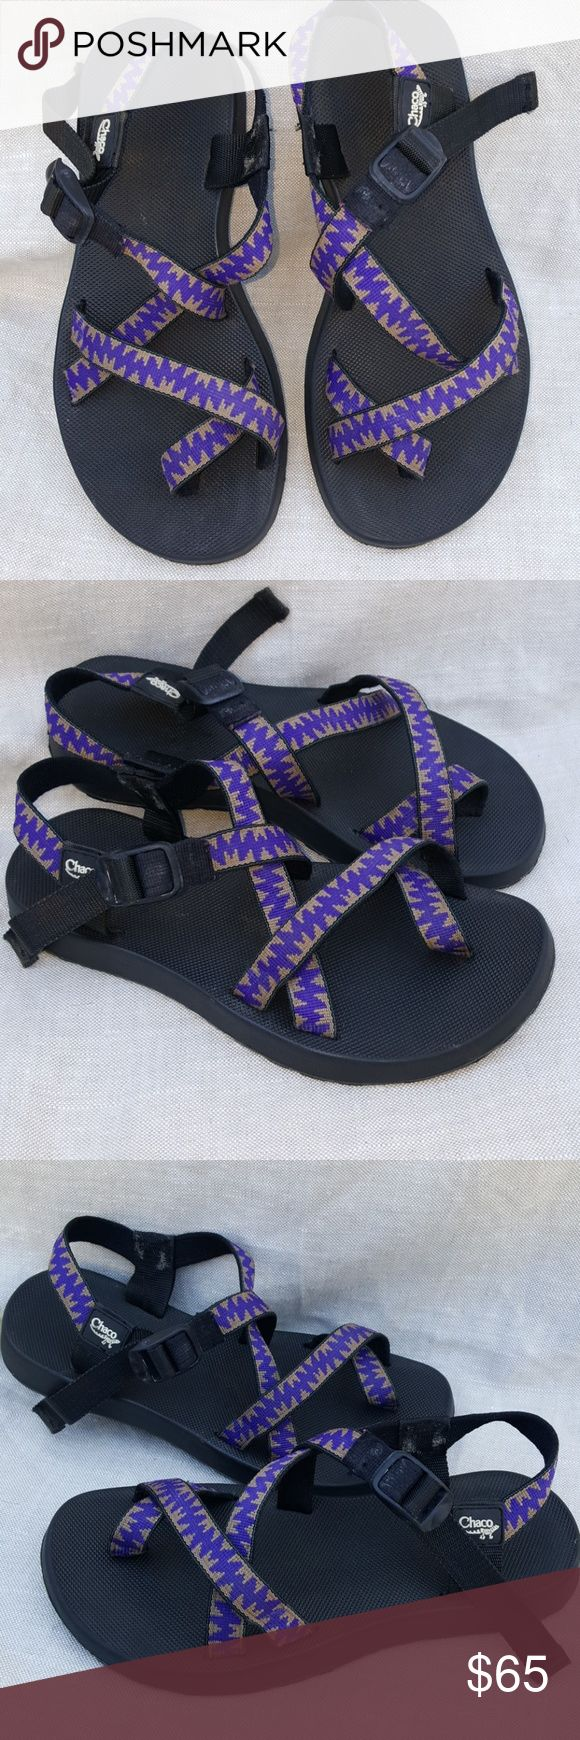 CHACO SIZE 9 Up for sale is a pair of black strappy CHACO Sandals. These pair of Chaco are Marked size 9 and are pre-owned but in very good condition, no reaps or tears, please compare measurements for better fit.  Please check all the provided pictures as they are part of these item description and show the actual condition plus what you see is what you will receive after purchase..  THANK YOU VERY MUCH FOR LOOKING. Chaco Shoes Sandals